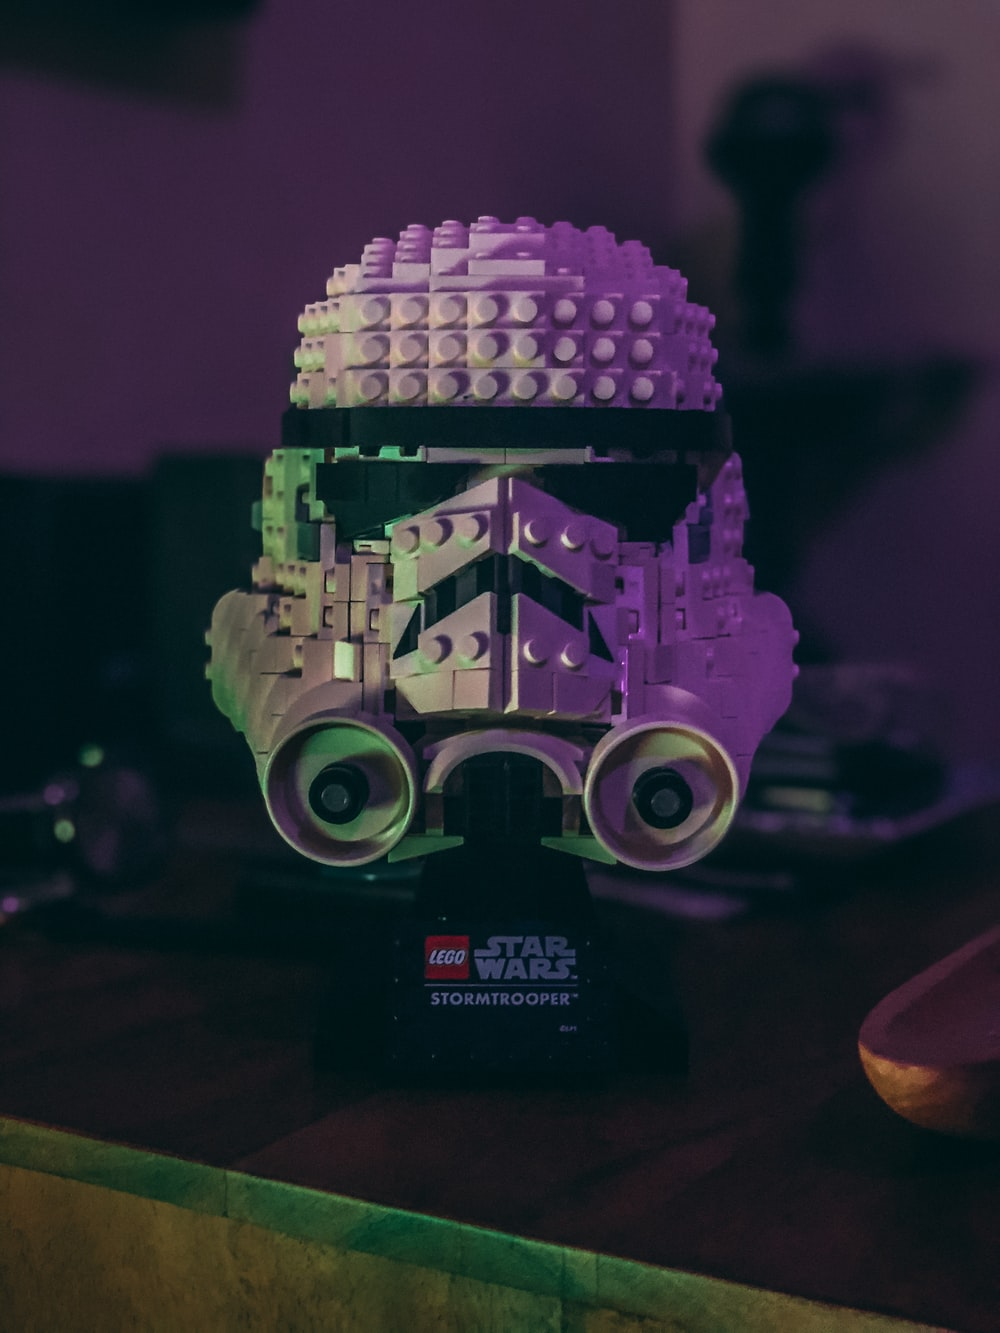 purple and white robot toy